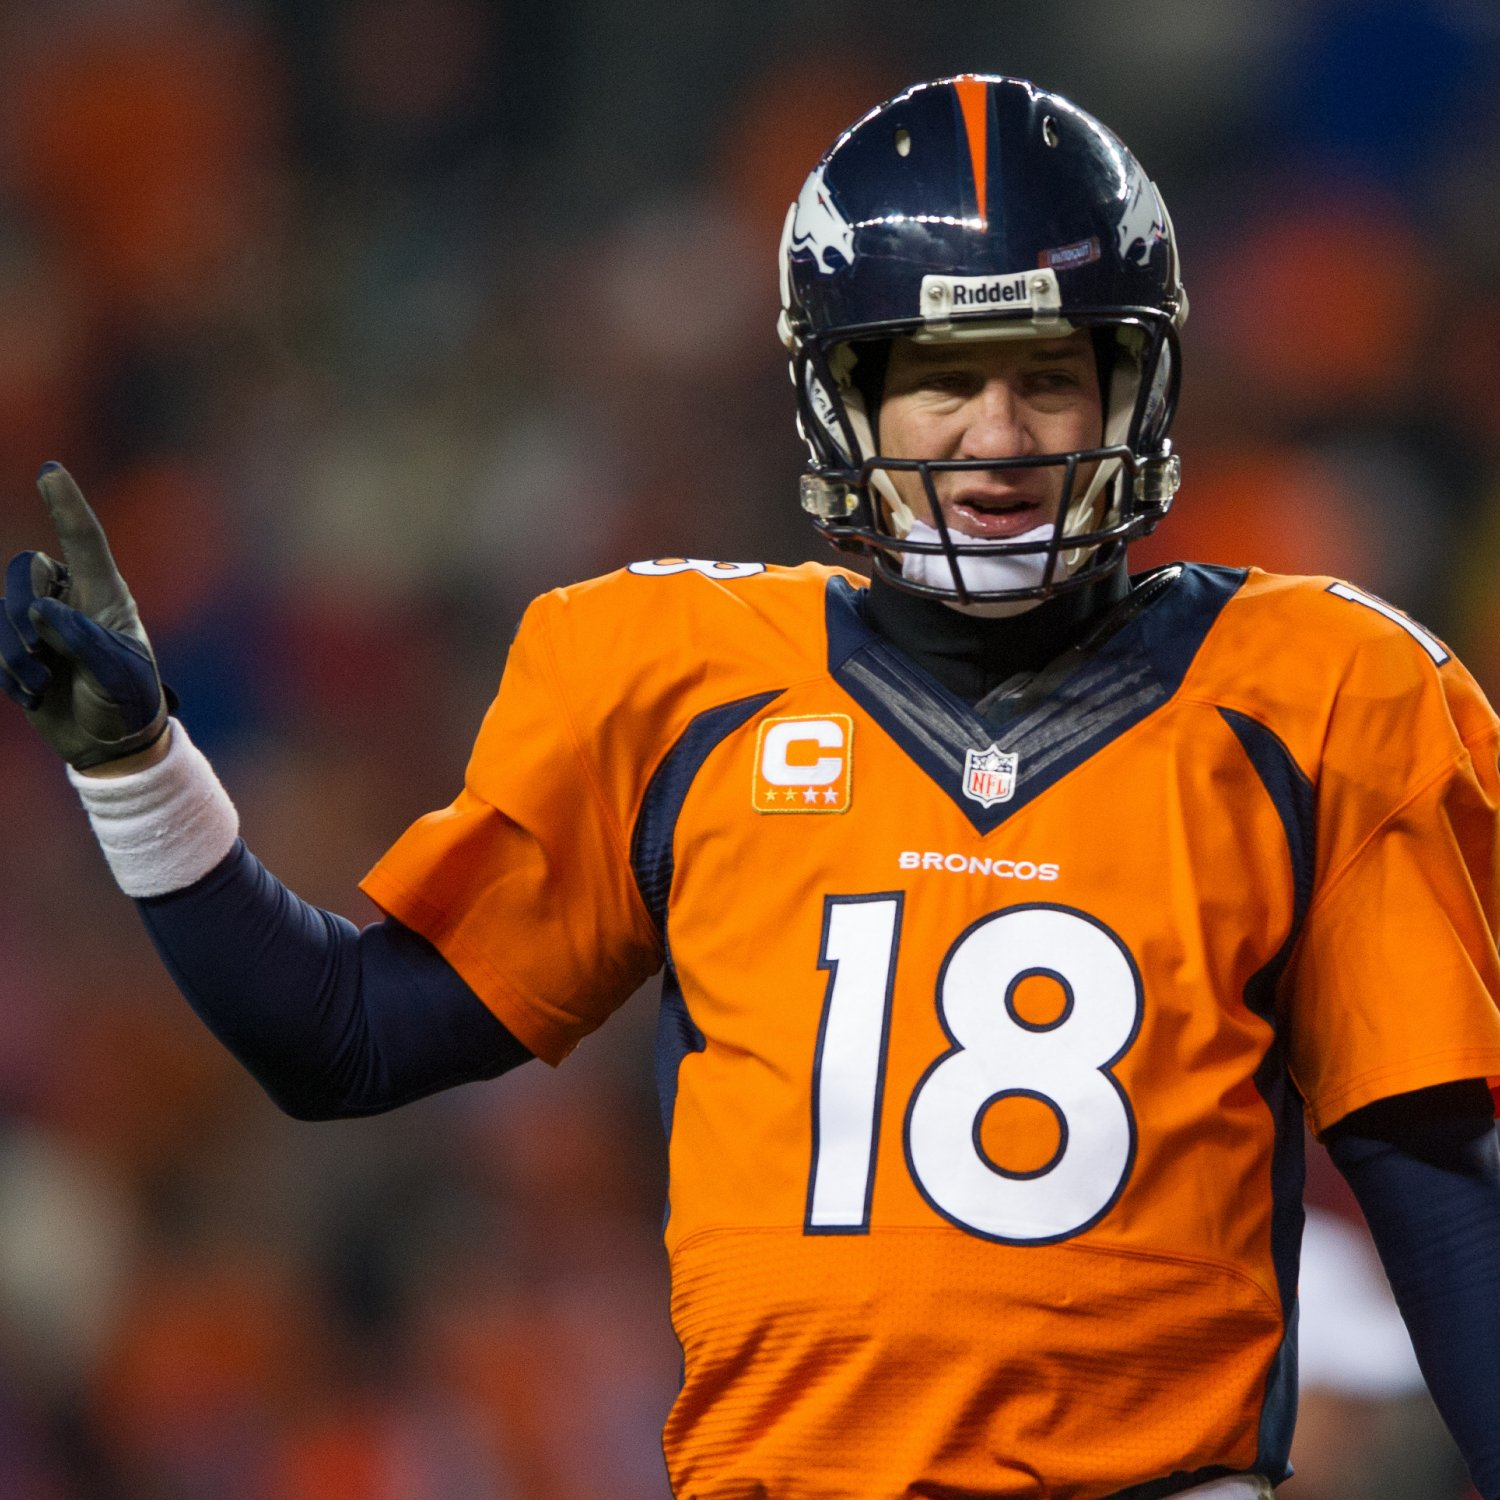 NFL Playoff Picture 2013: Week 15 Standings, Super Bowl